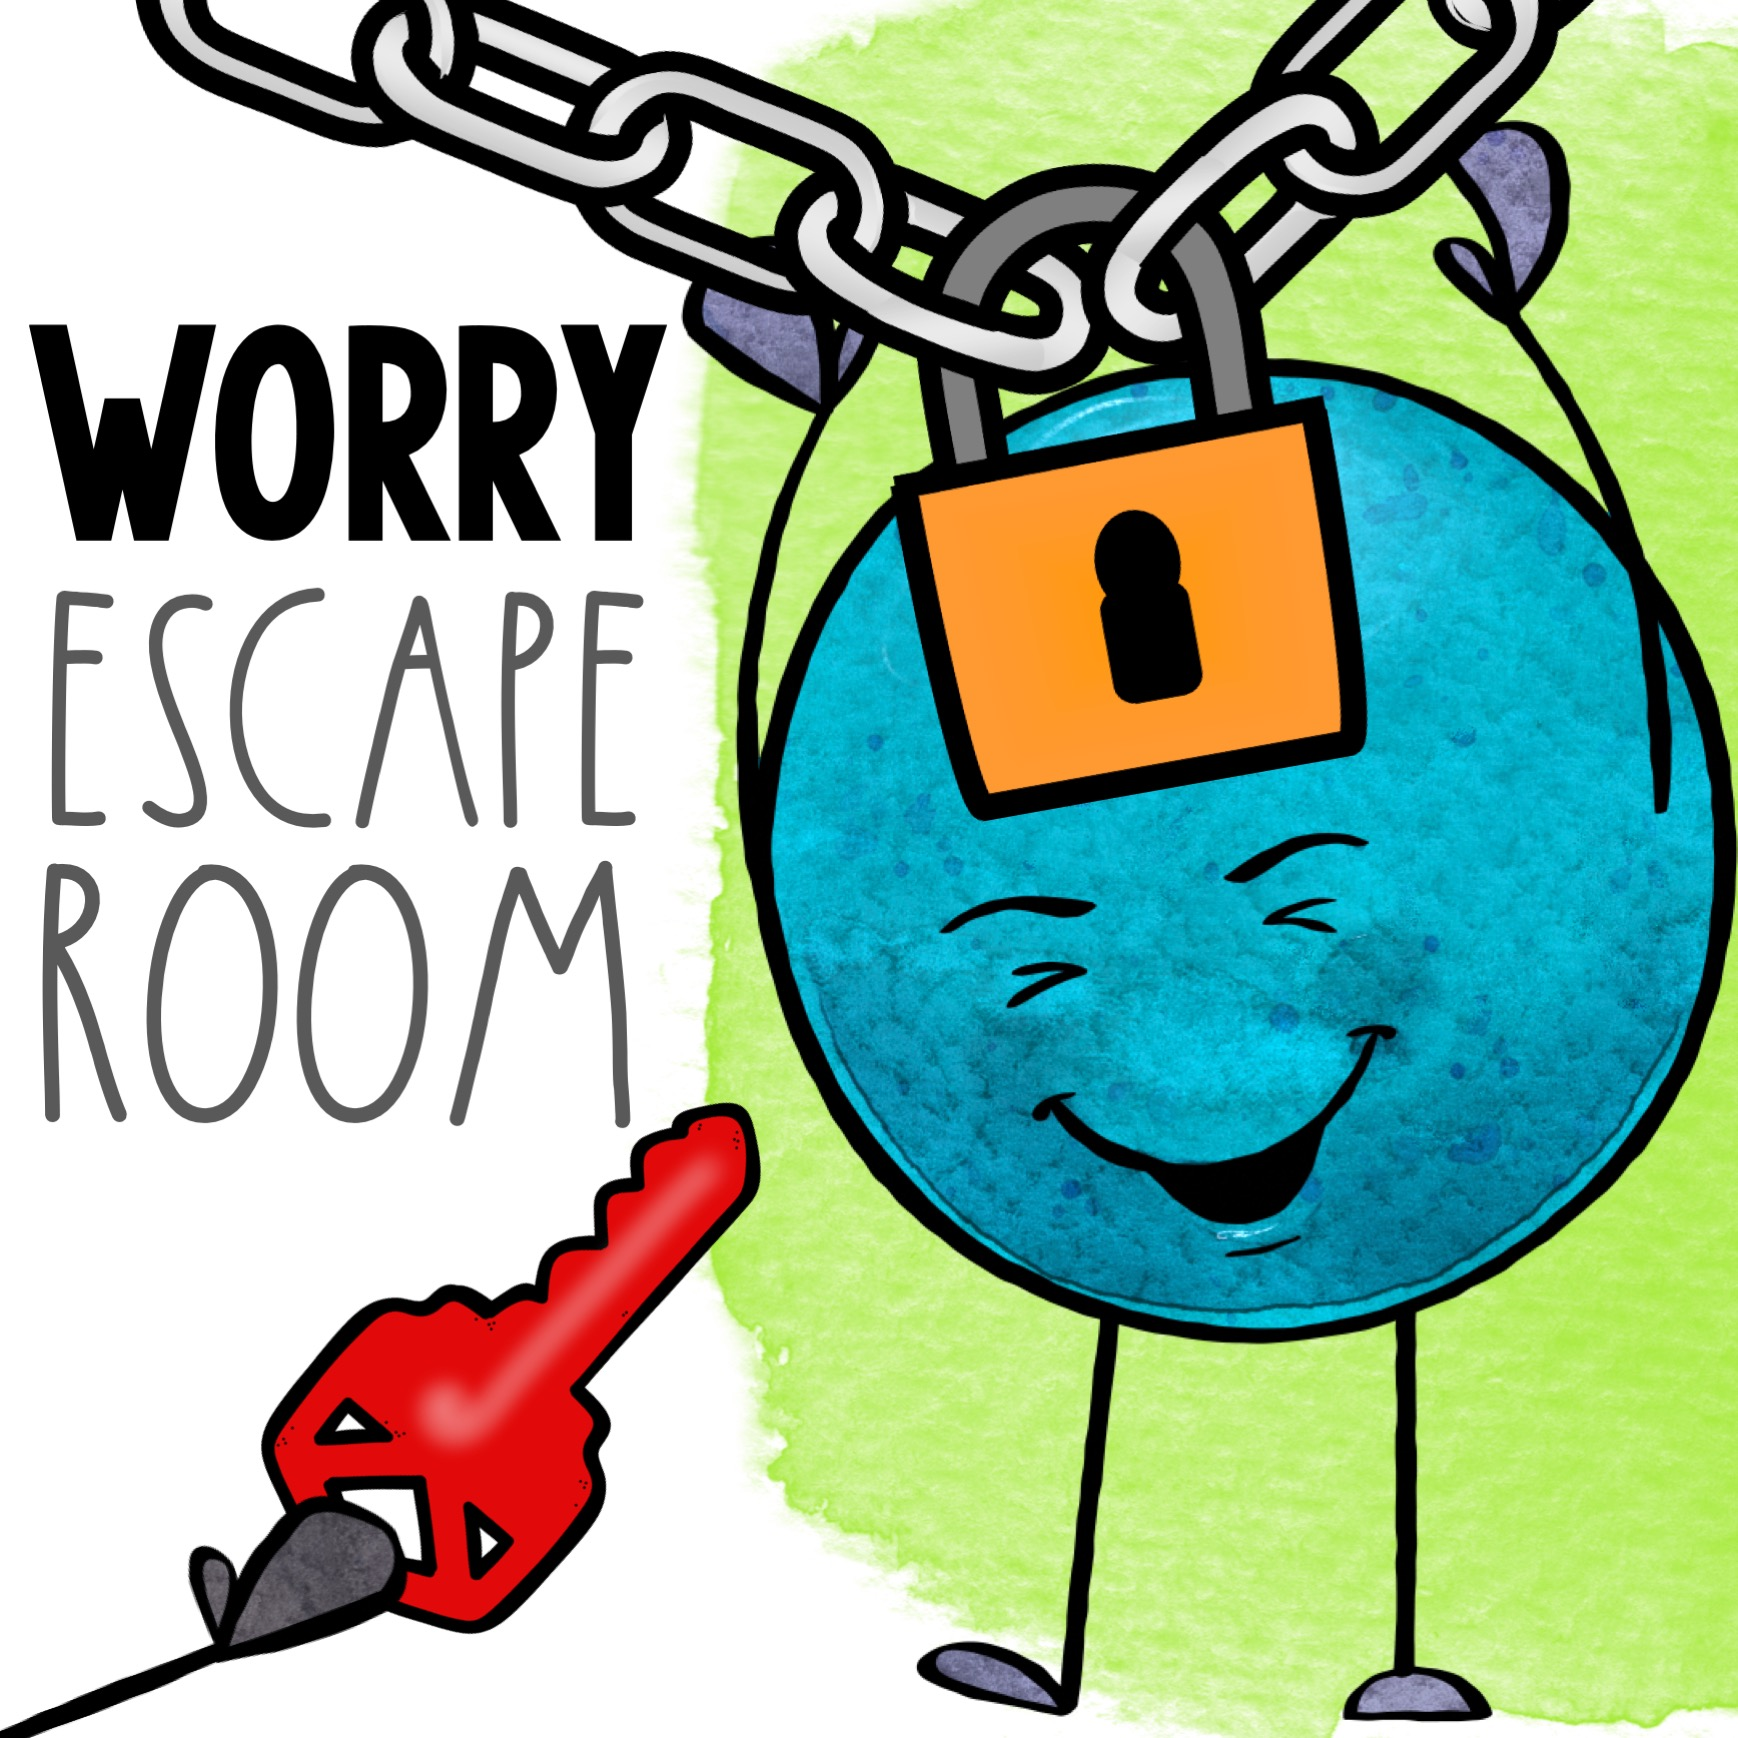 worry escape room game